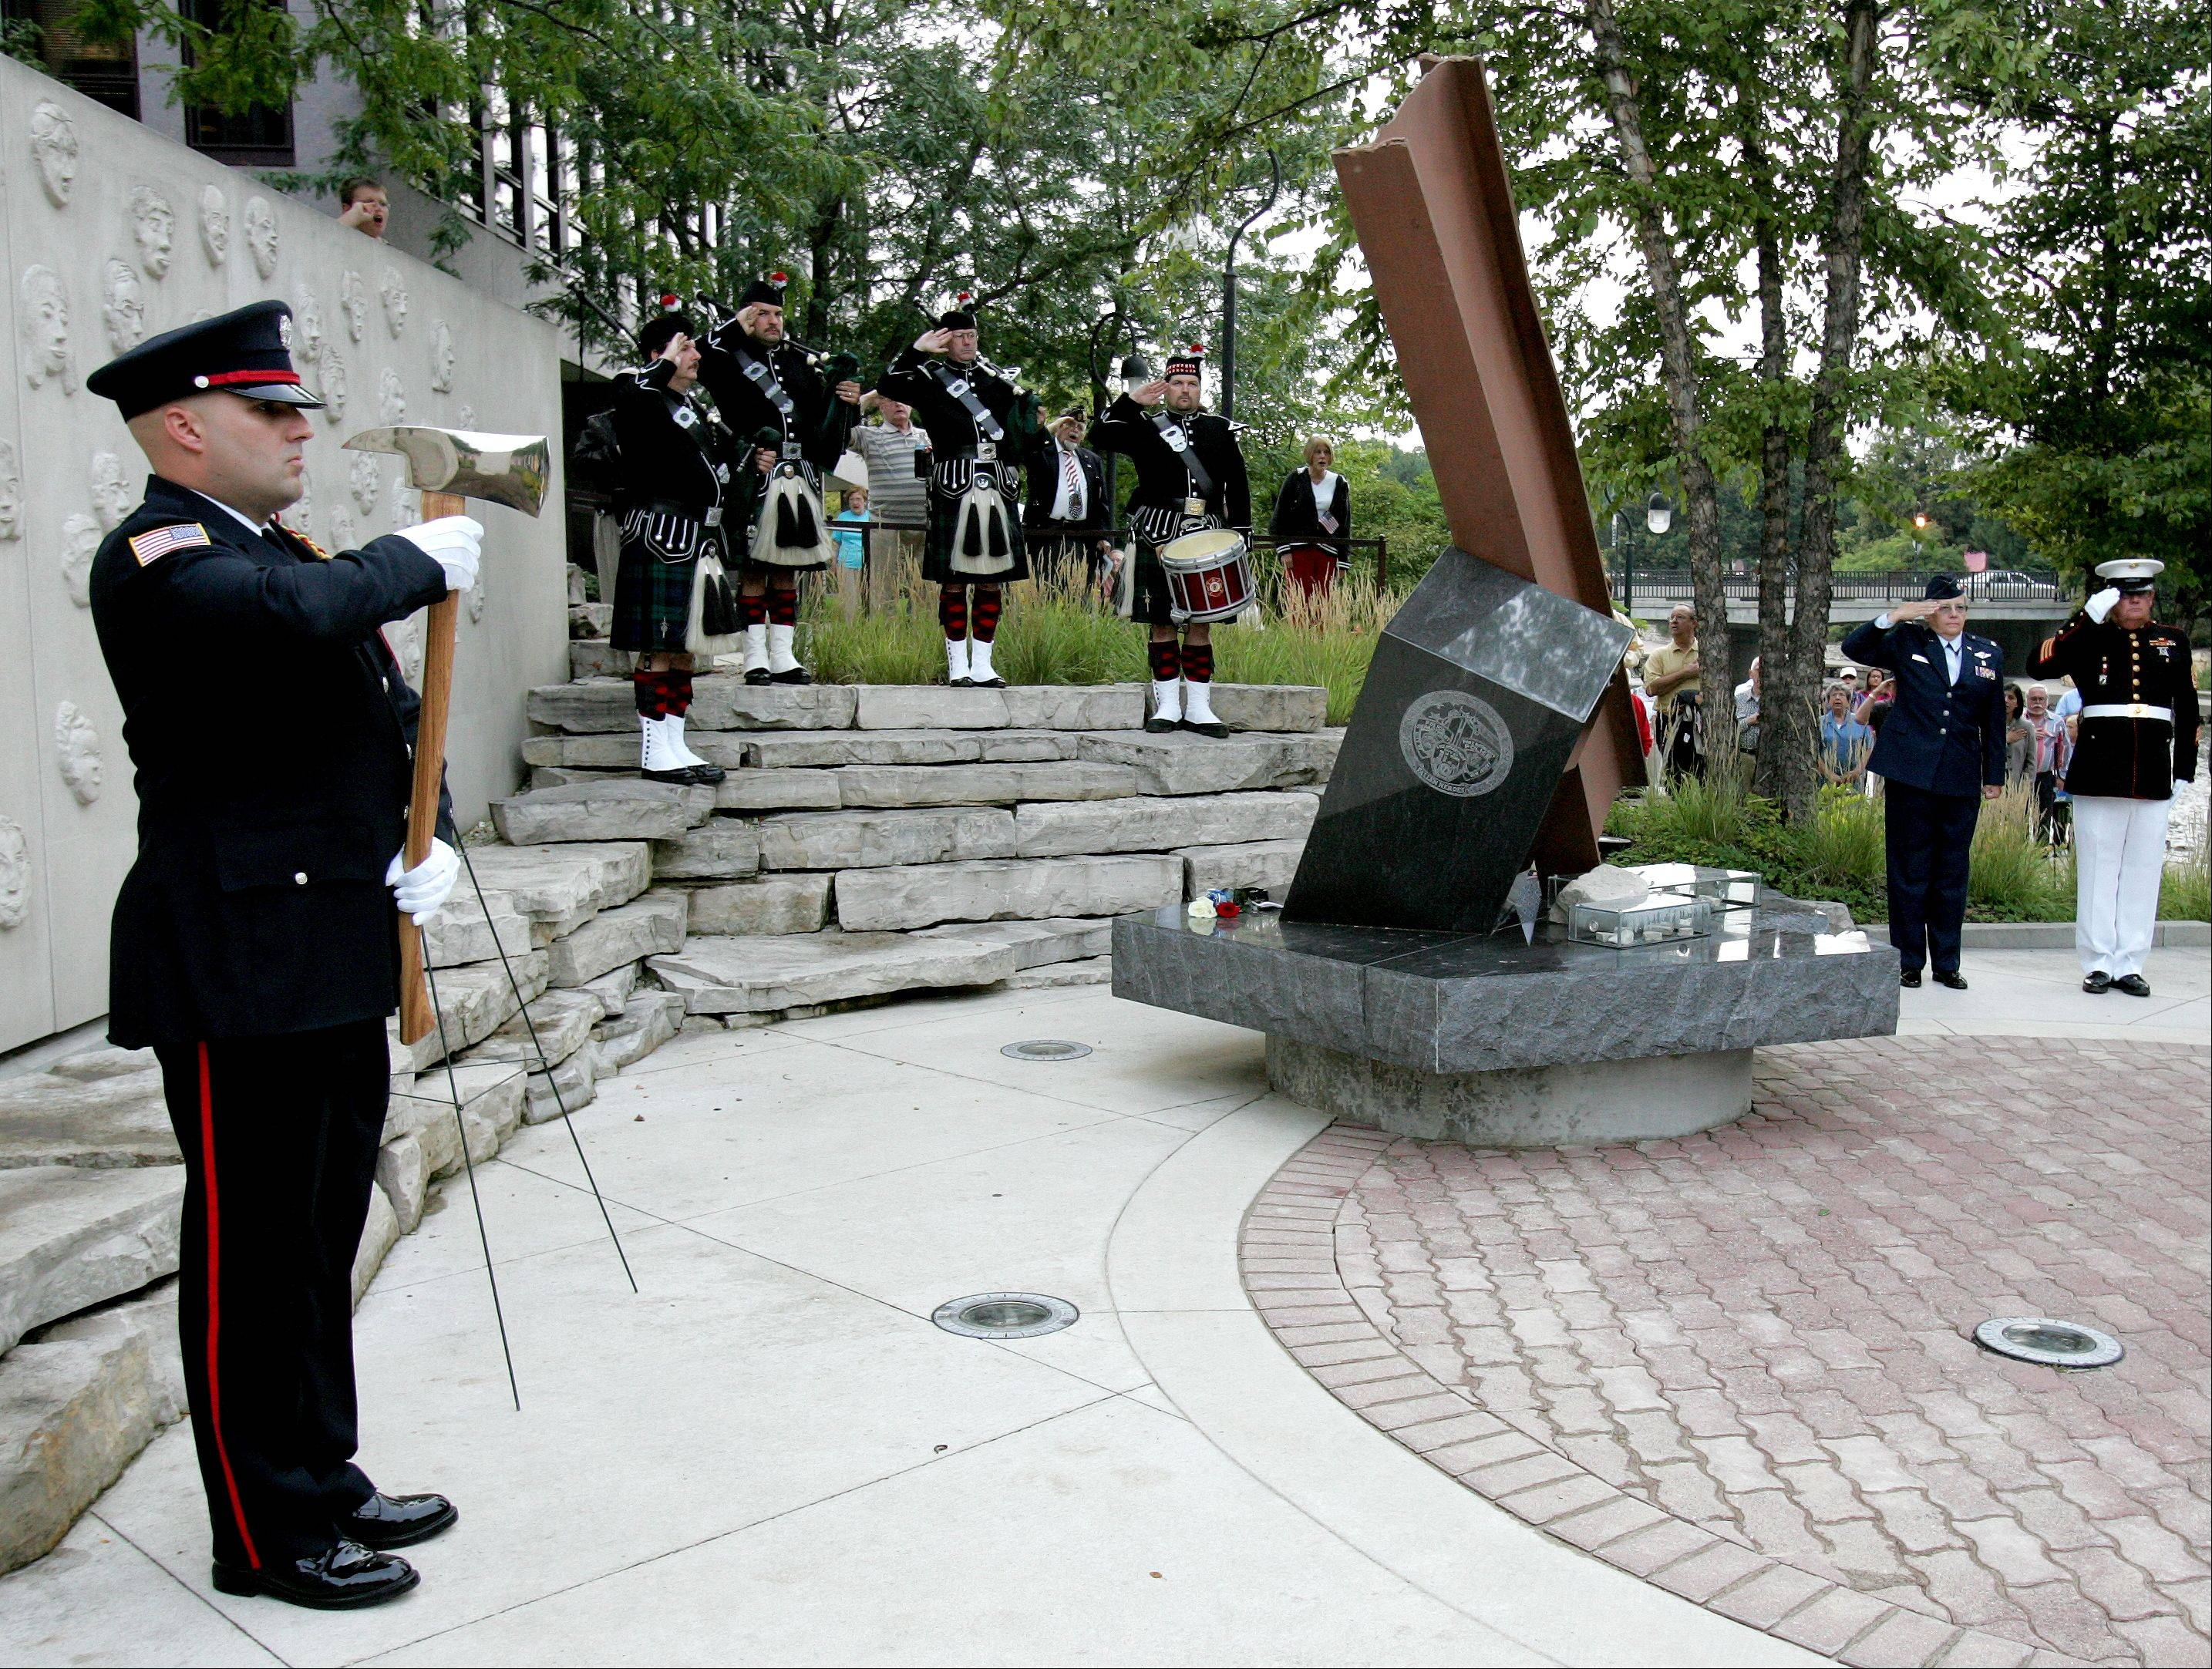 Naperville's Sept. 11/Cmdr. Dan Shanower Memorial is the site of the city's annual remembrance of the attacks and those who died, including Navy Cmdr. Dan Shanower, a Naperville native.